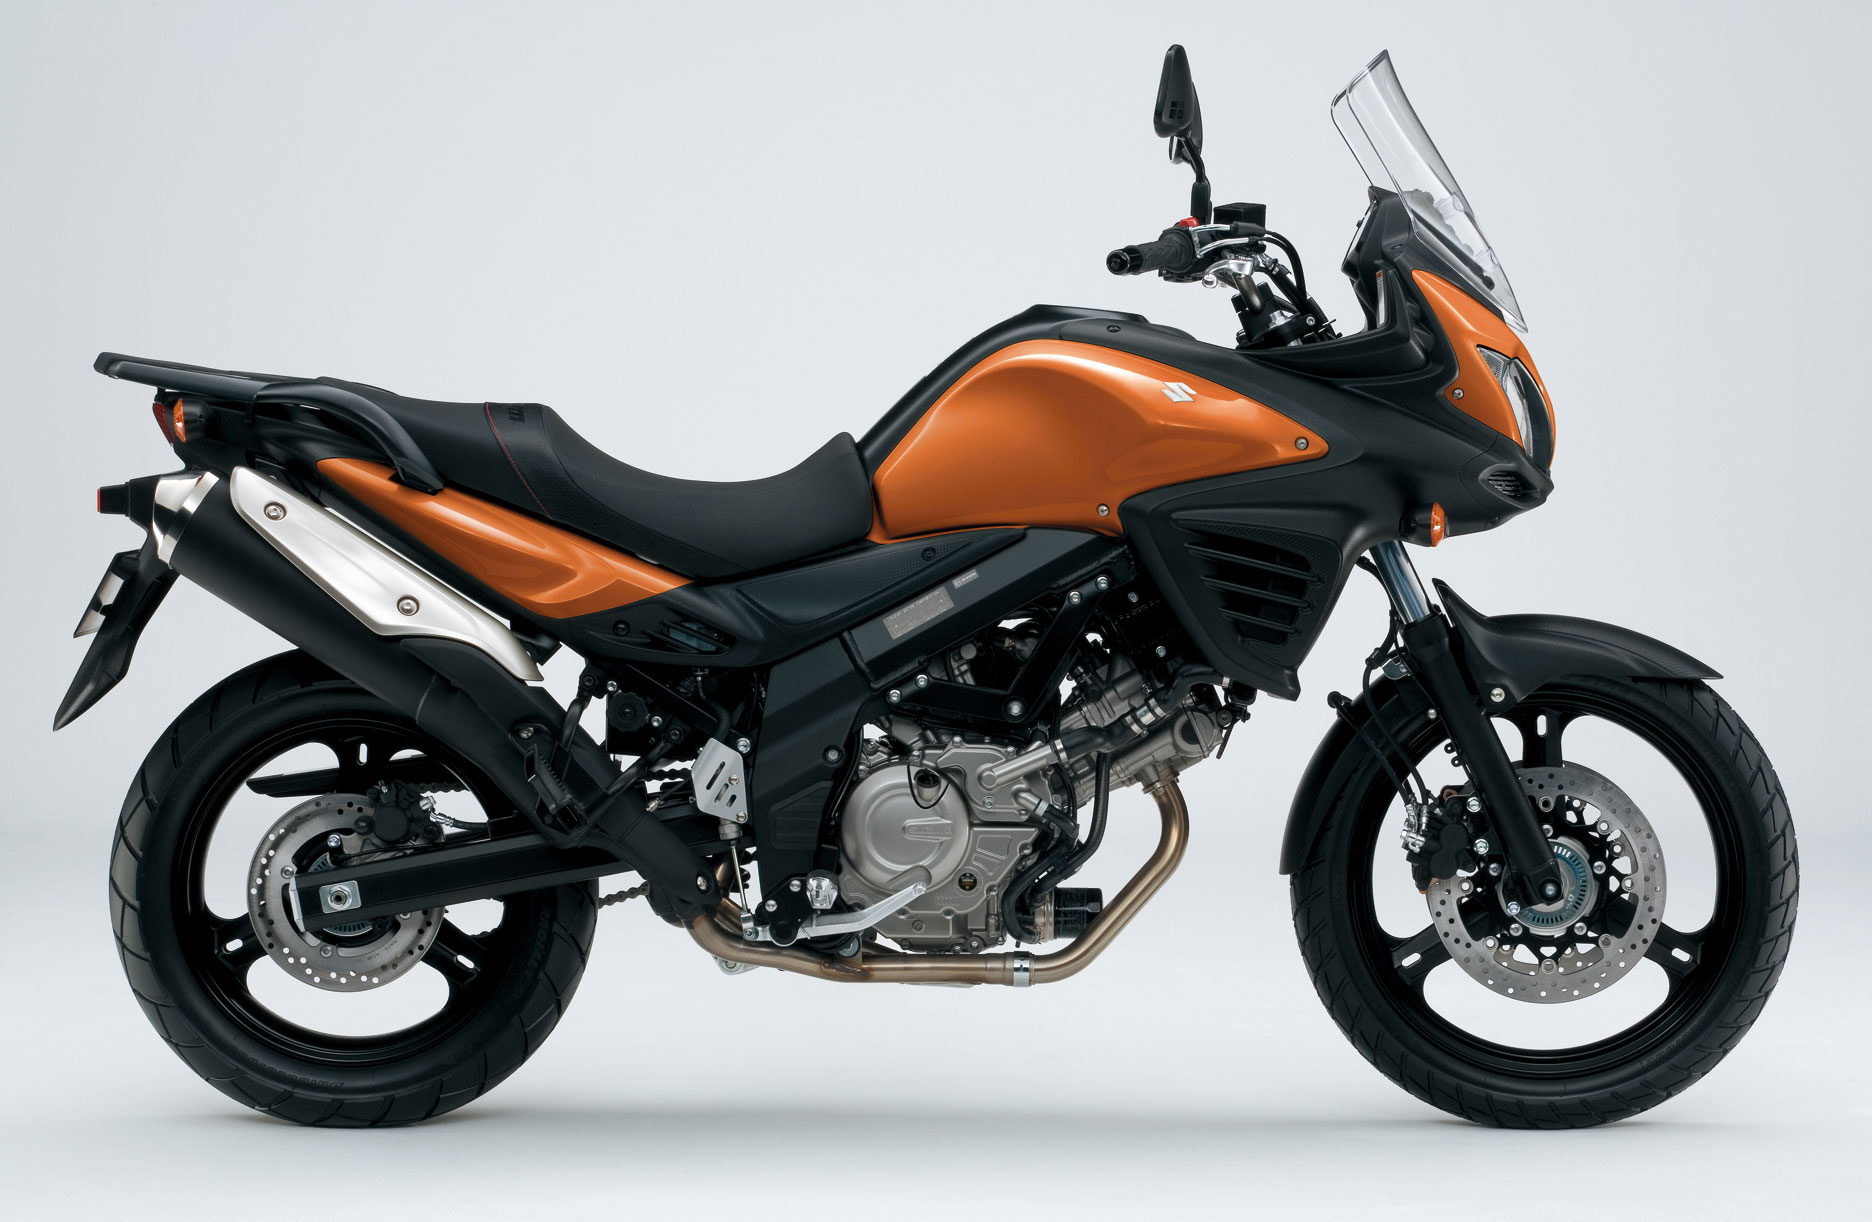 2012 Suzuki DL650 V-Strom Service Manual